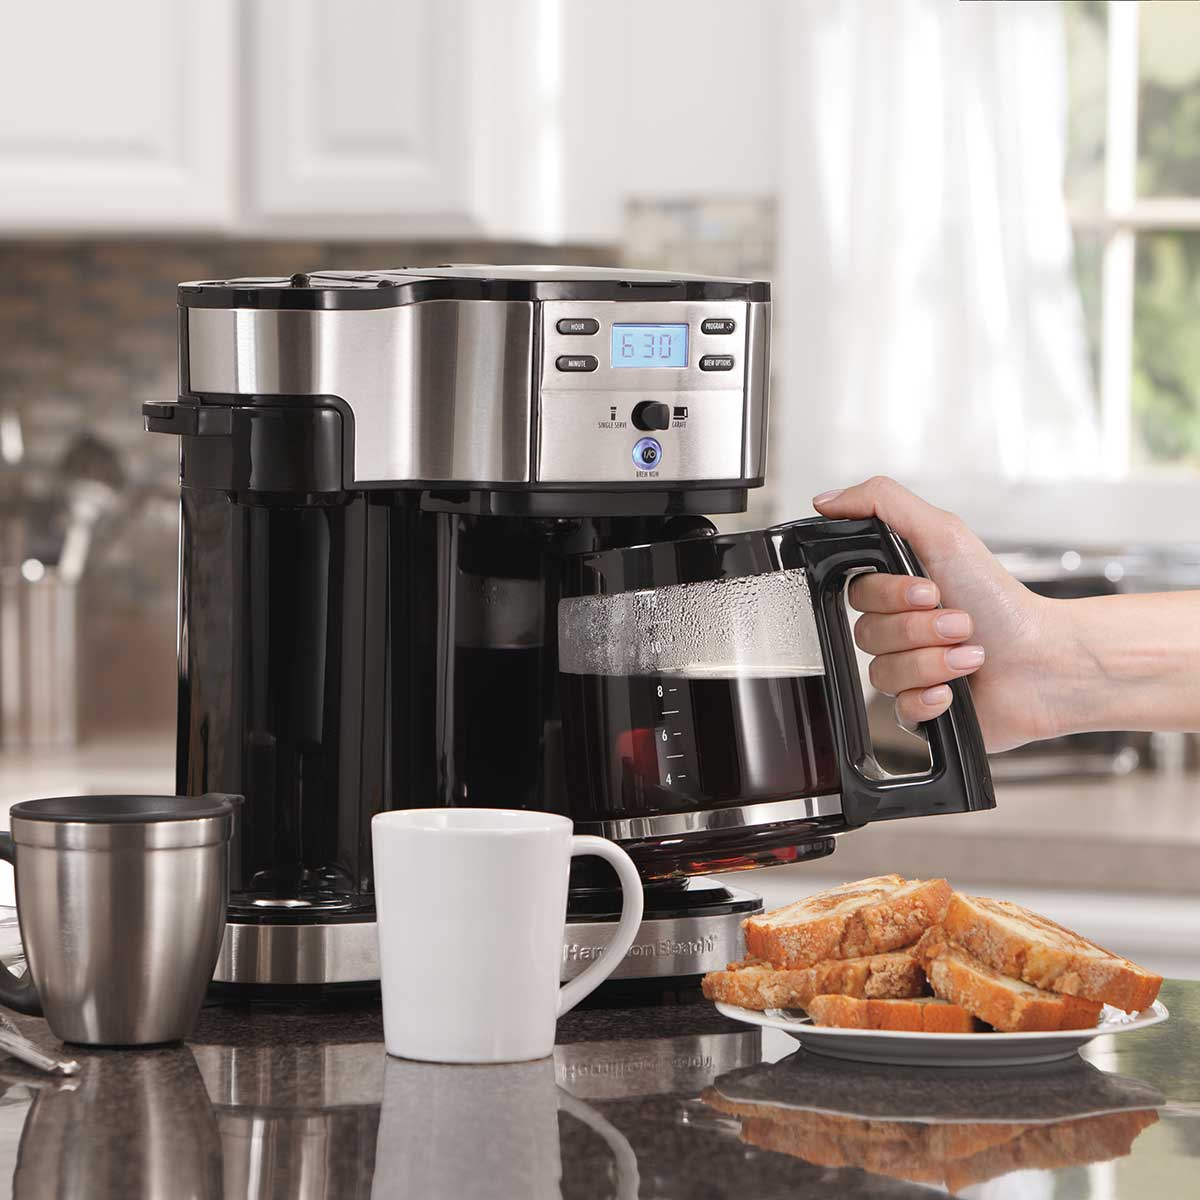 Hamilton Beach 2 Way Coffee Maker With 12 Cup Carafe Pod Brewing Black Stainless 49980z